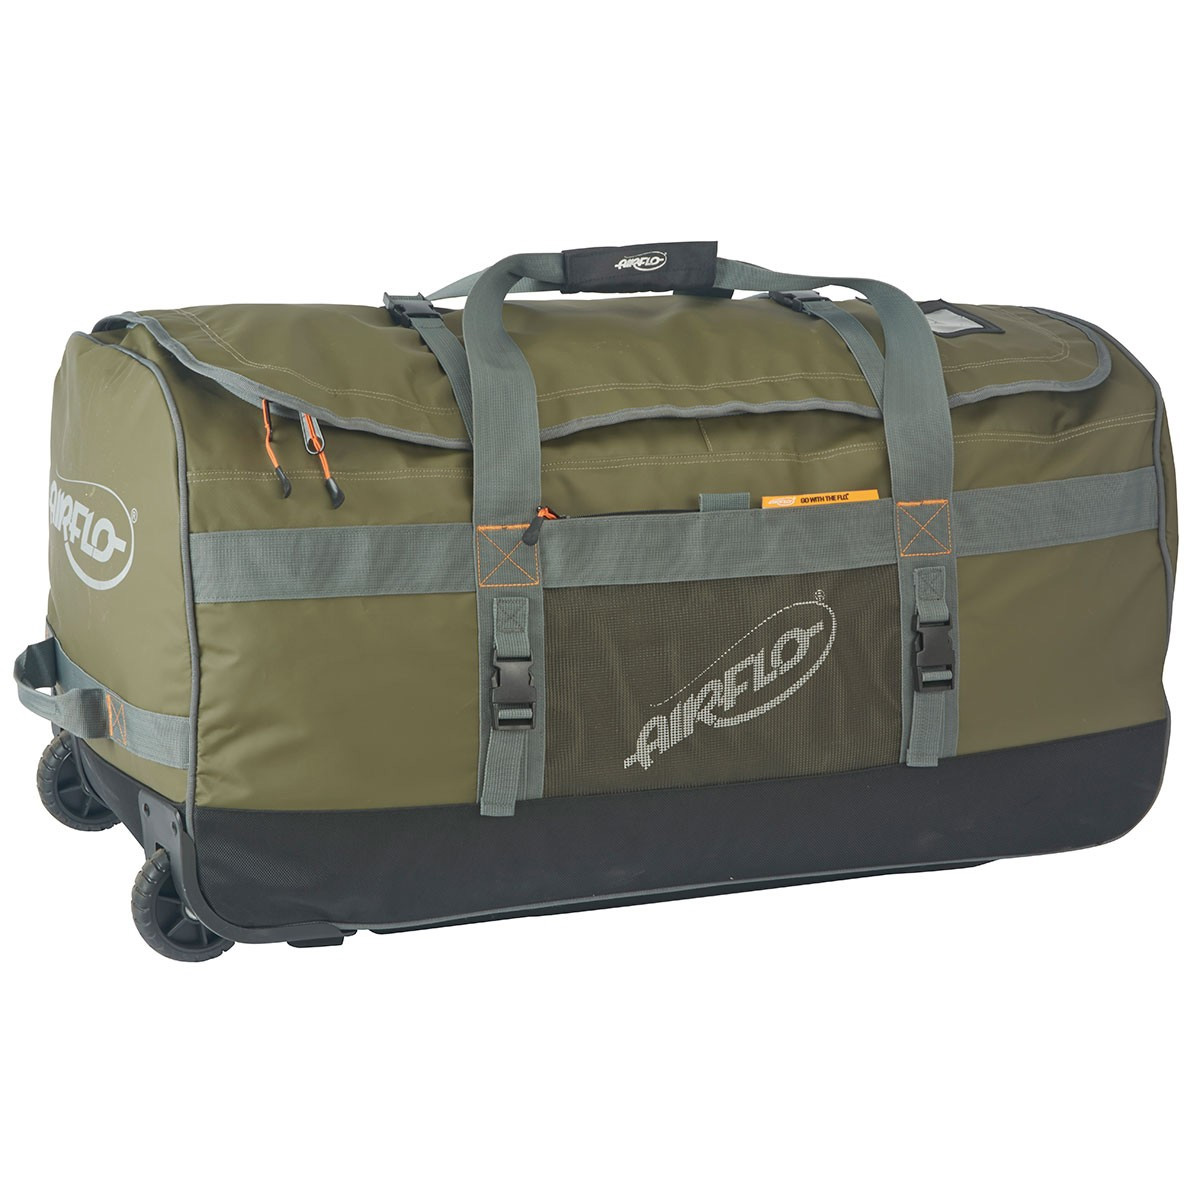 airflo fly dri 150 litre cargo wheely fishing bags